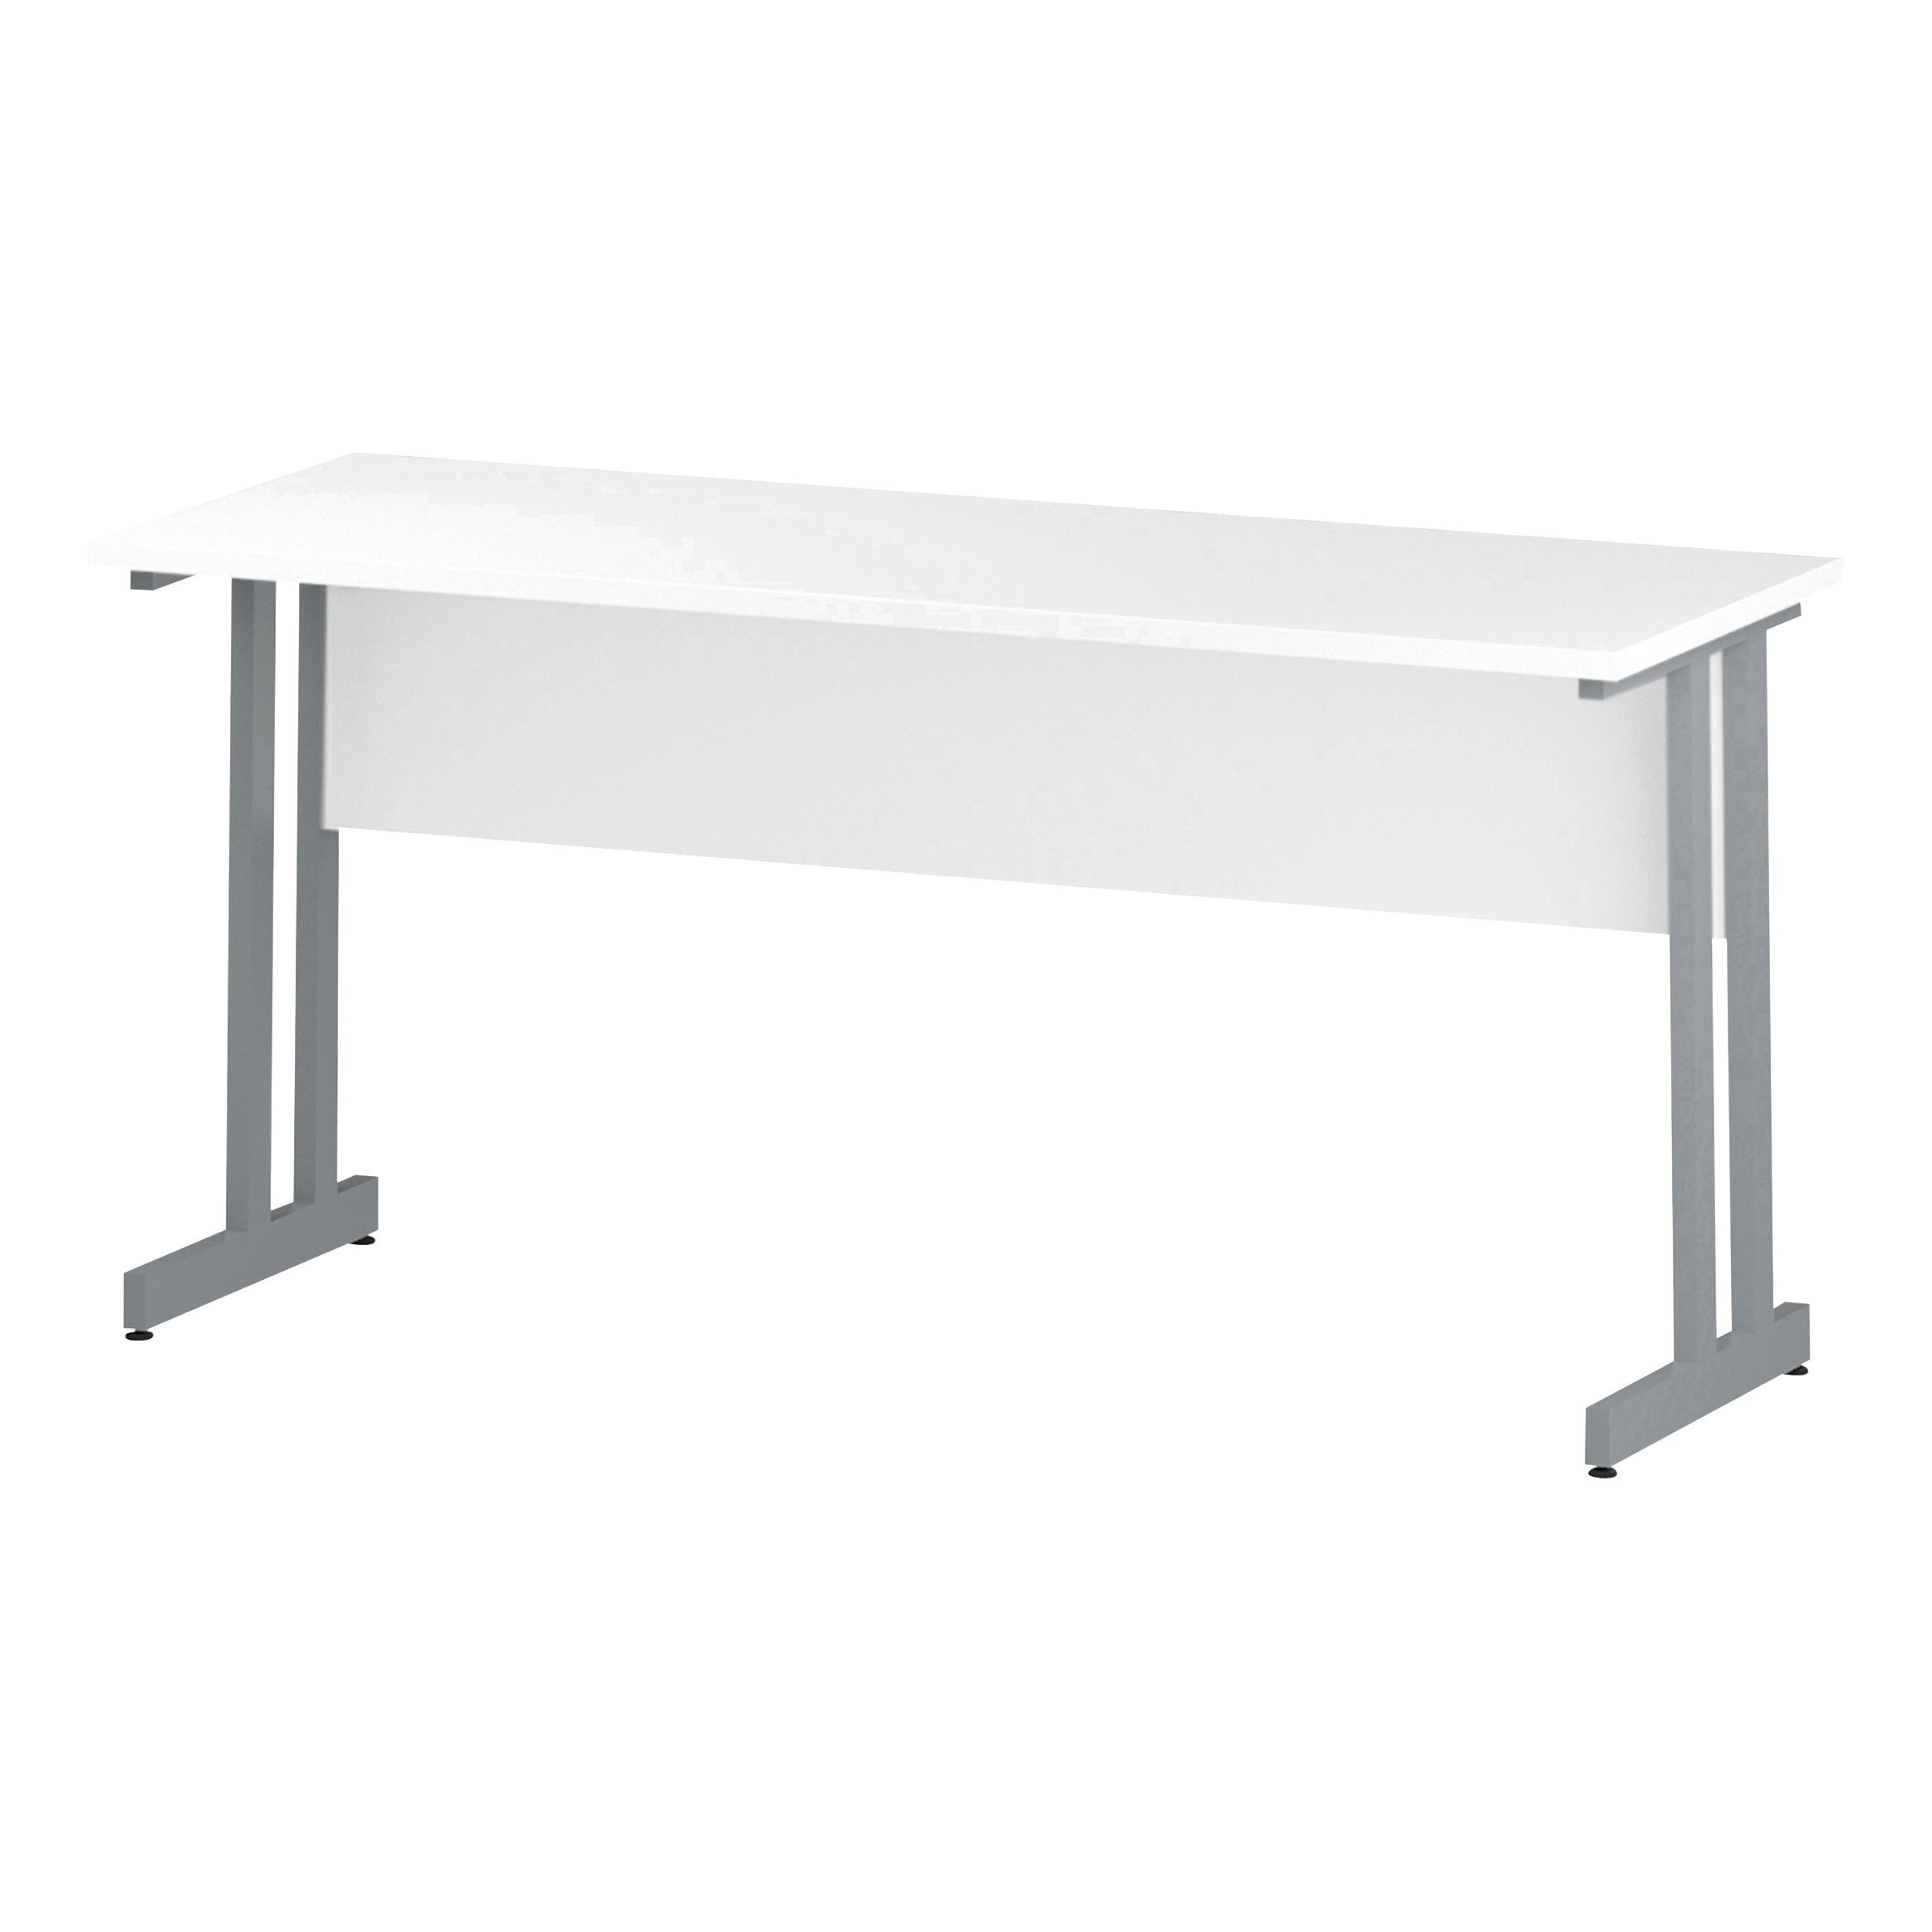 Trexus Rectangular Slim Desk Silver Cantilever Leg 1600x600mm White Ref I002198